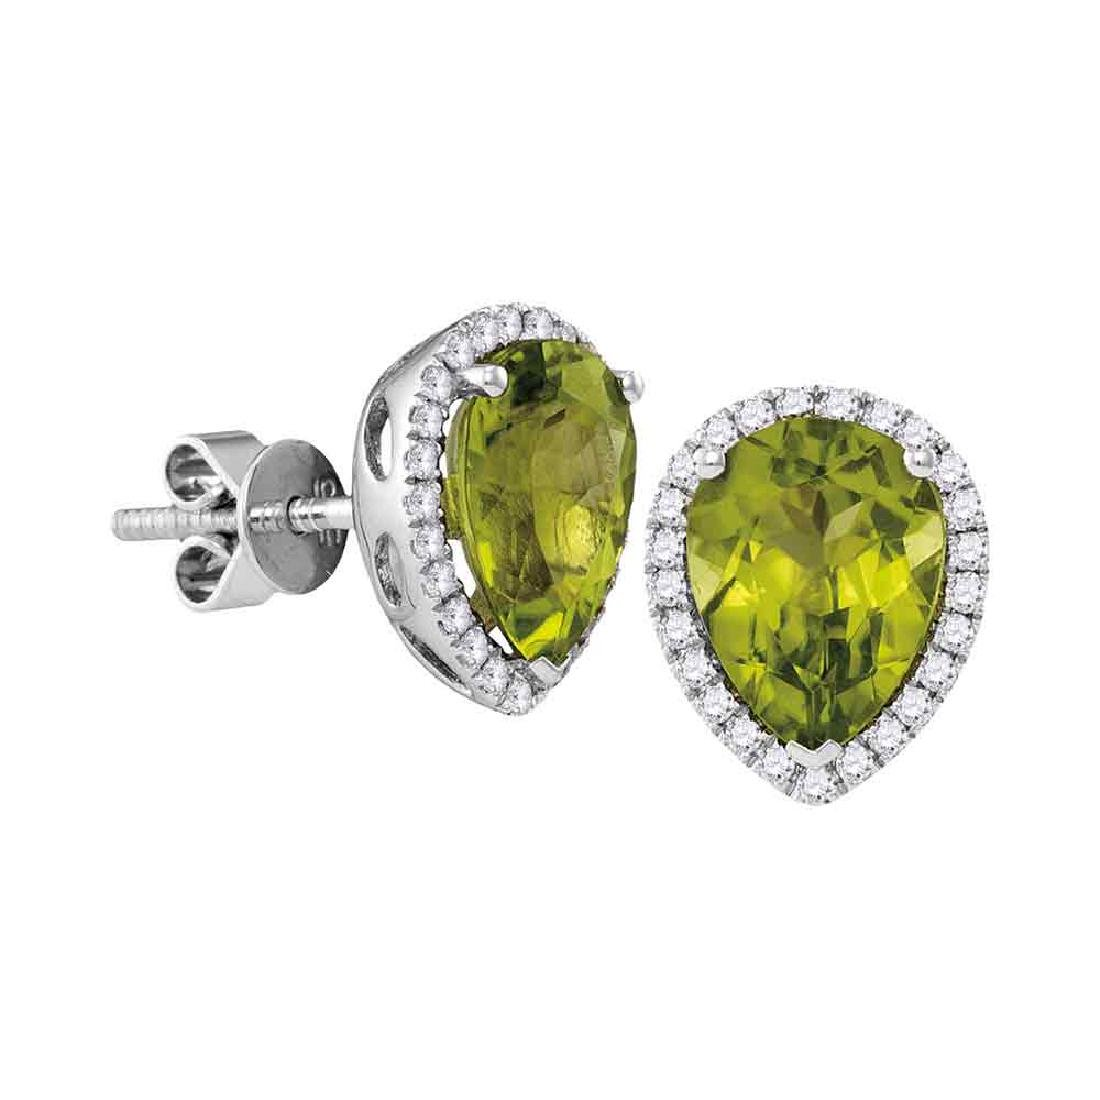 1.6 CTW Pear Peridot Solitaire Diamond Earrings 14KT